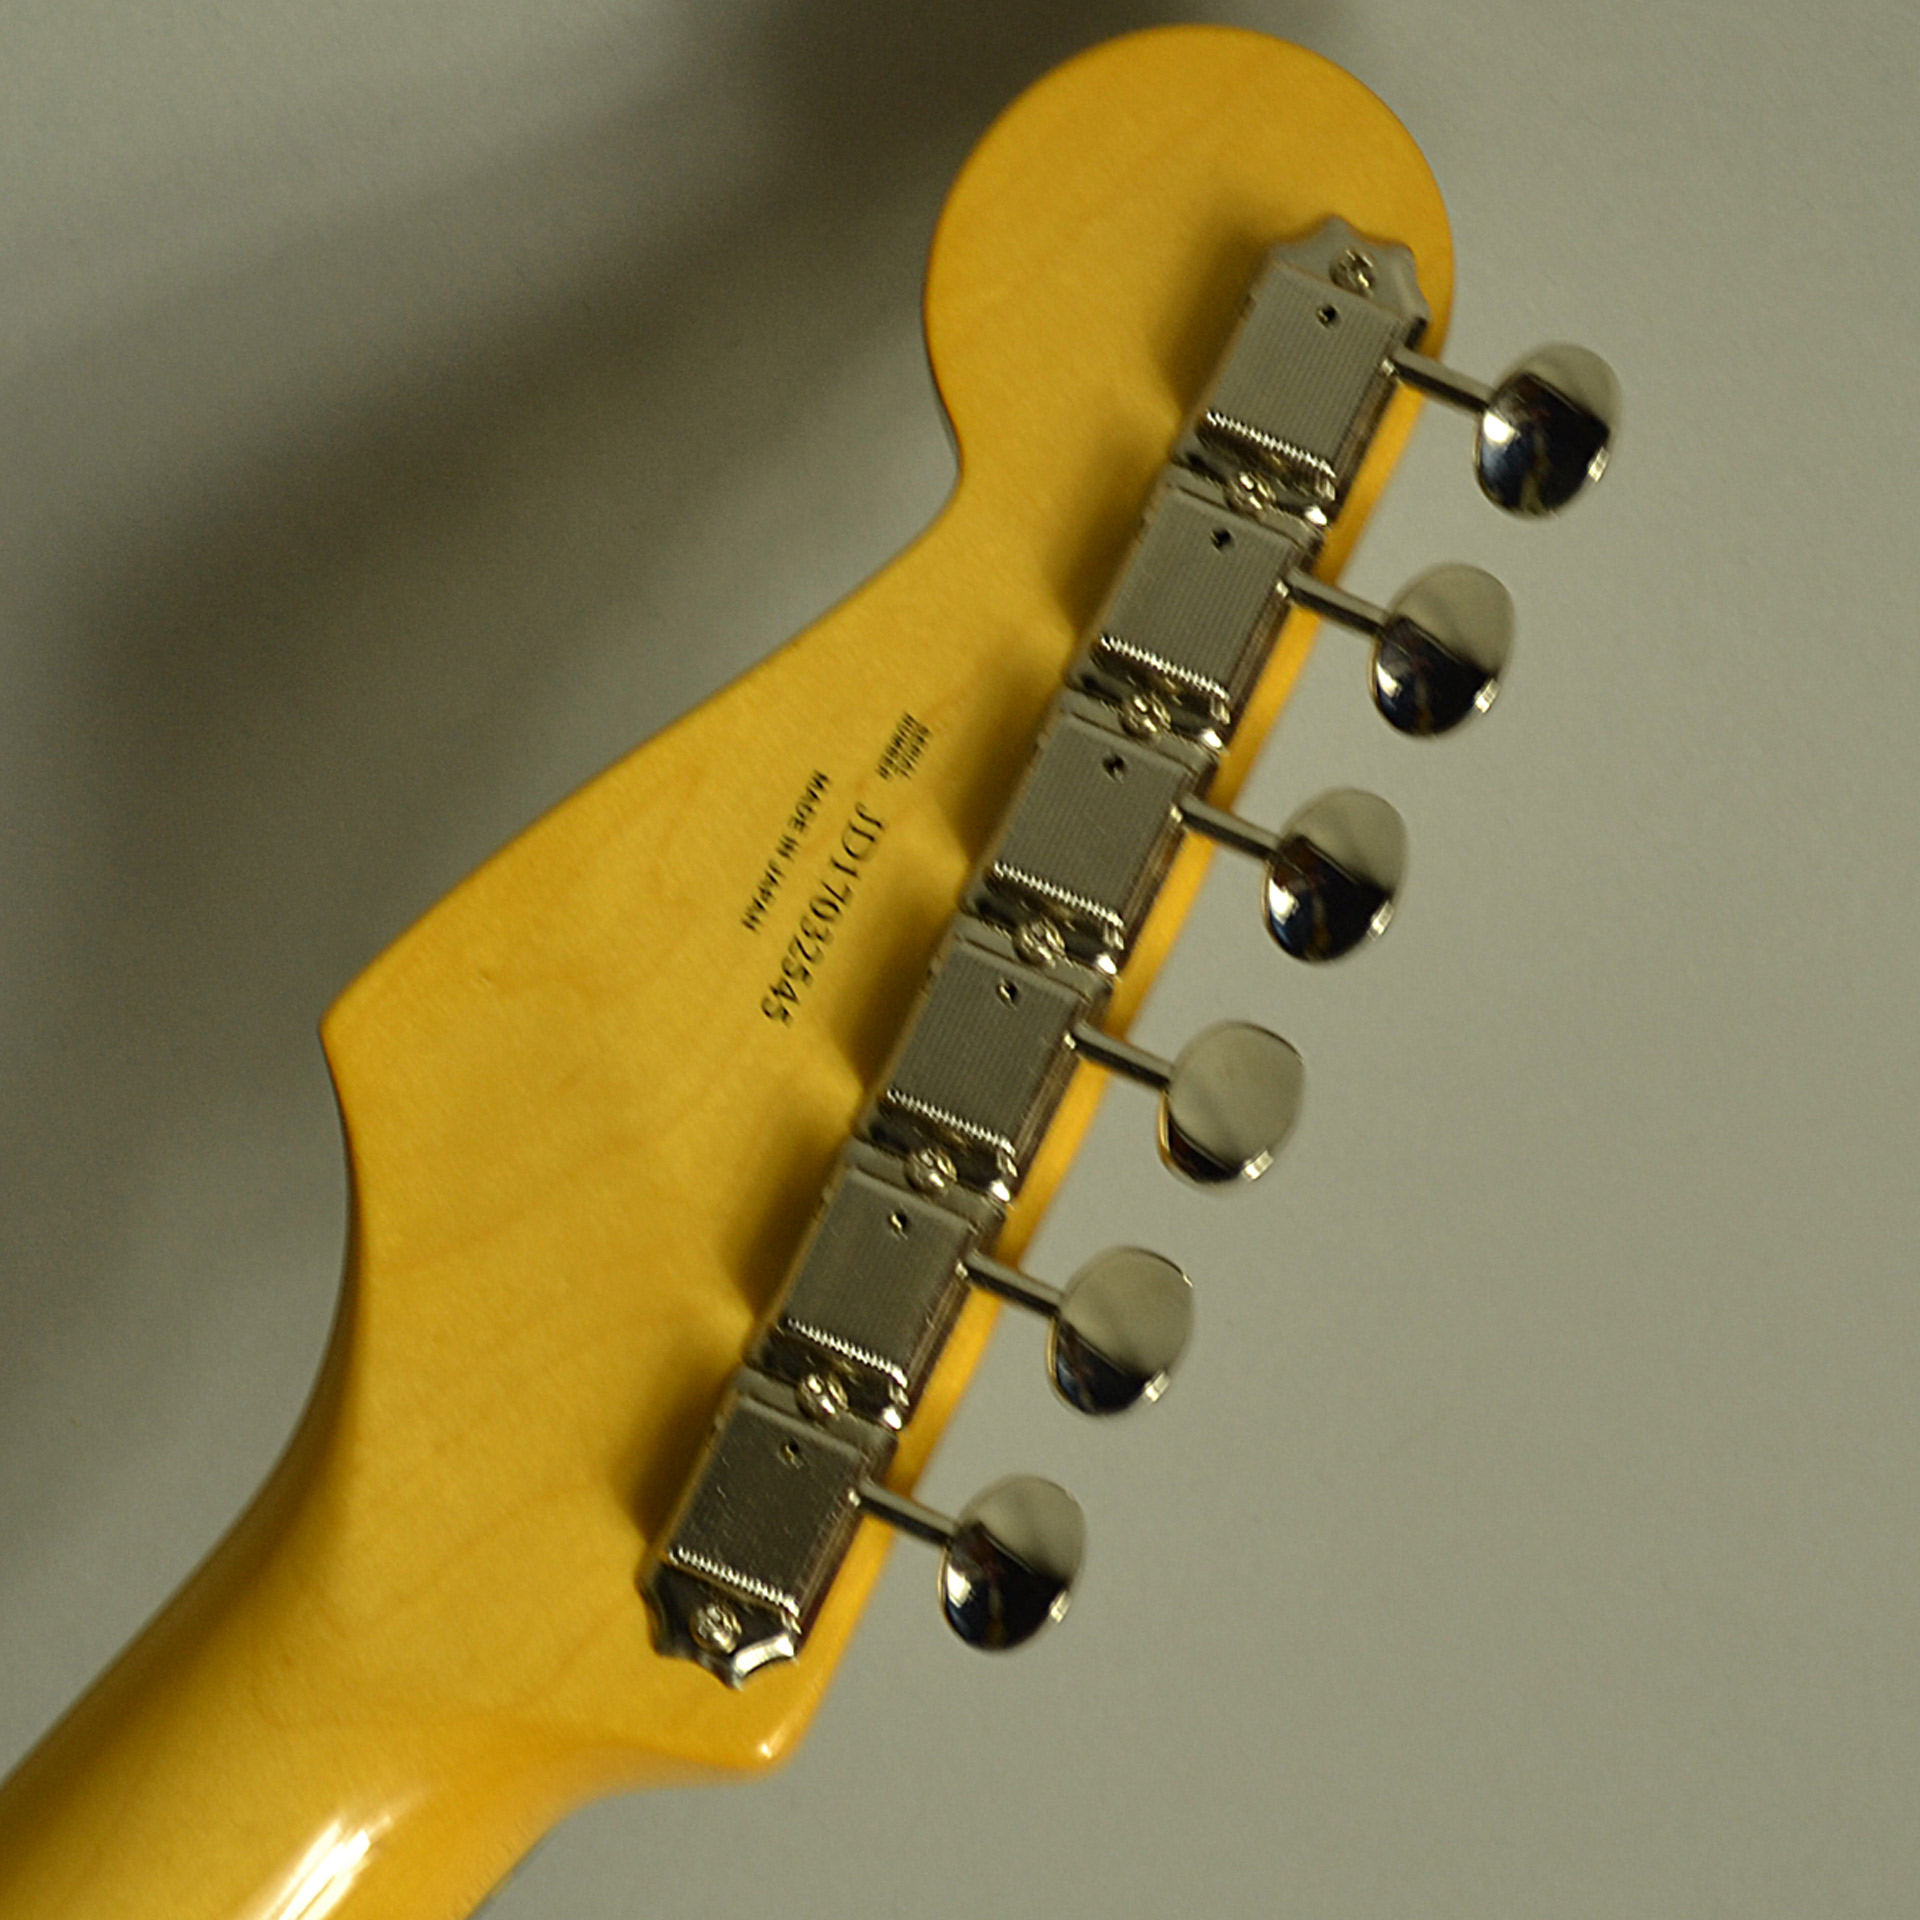 Traditional 60s Stratocasterのヘッド裏-アップ画像